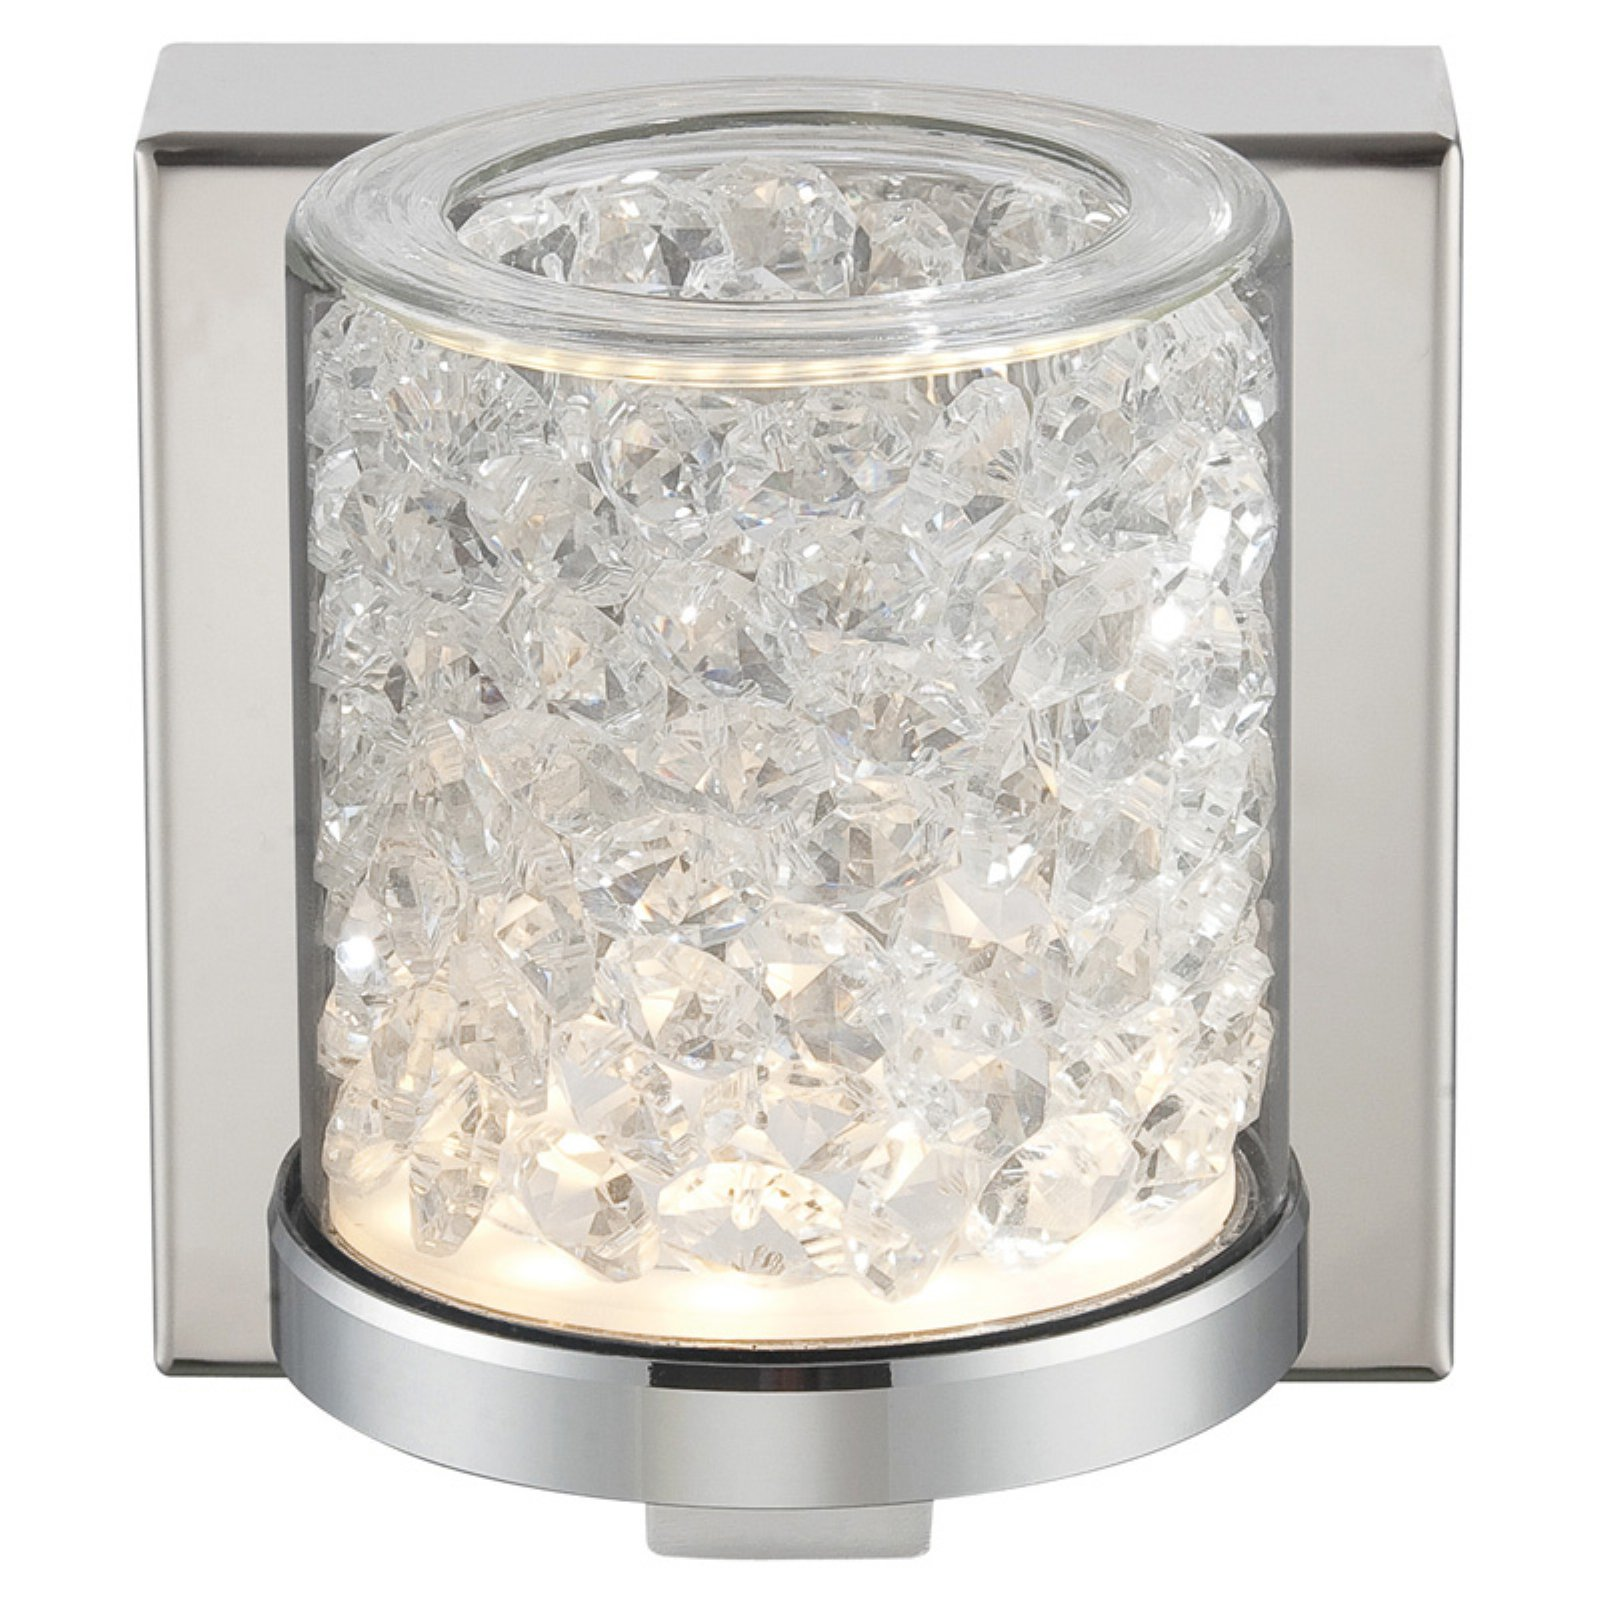 Lite Source Kristen LED Wall Lamp, Chrome Finish with Glass and Crystal Shade